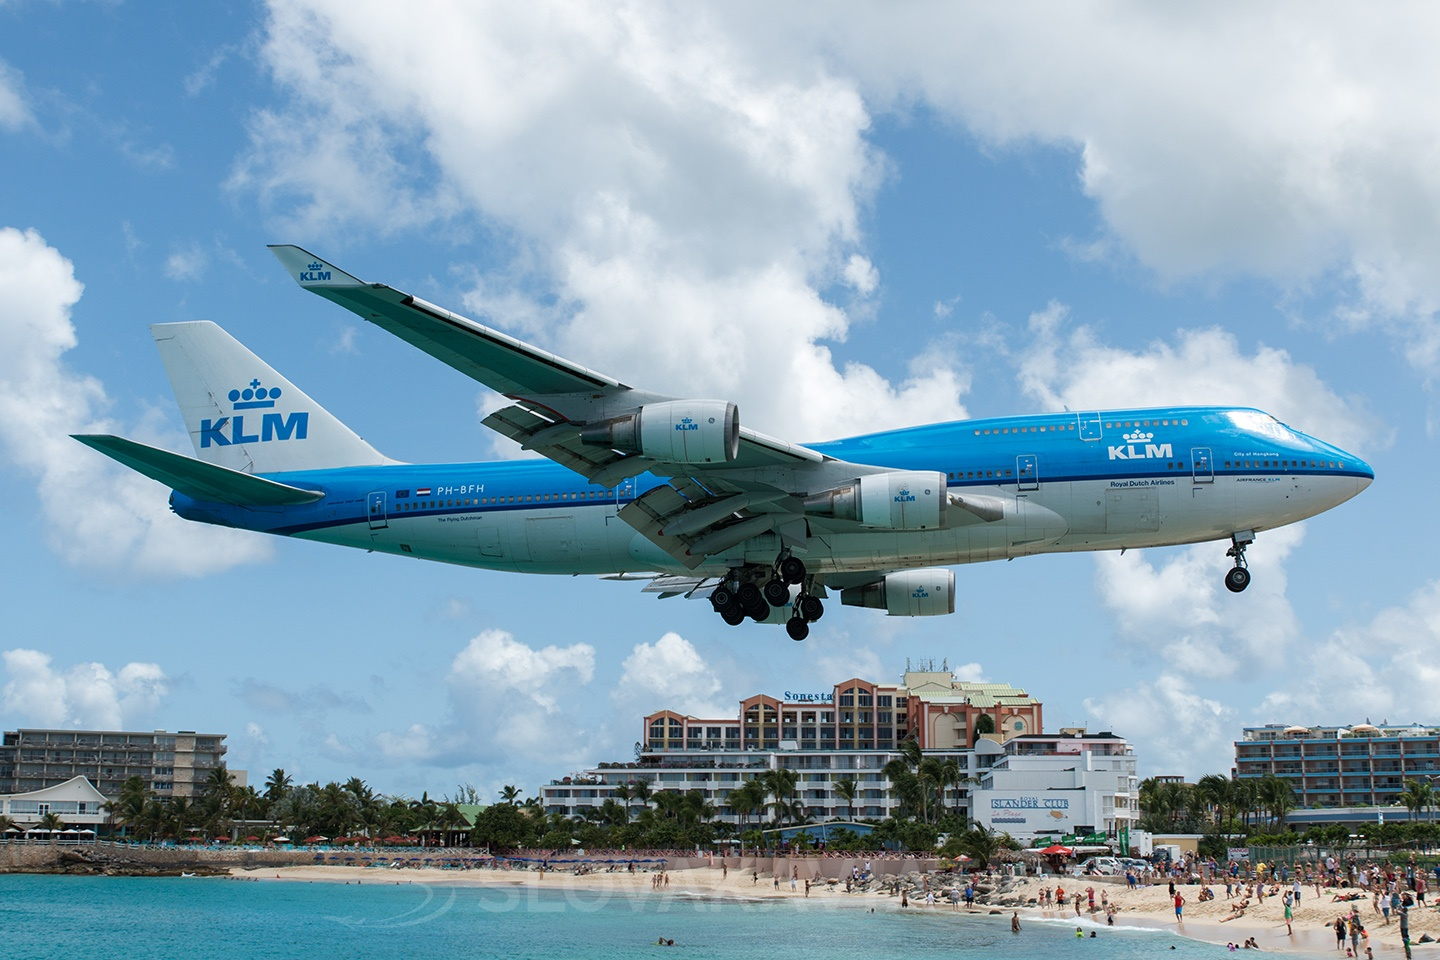 KLM - Royal Dutch Airlines Boeing 747-400 PH-BFH